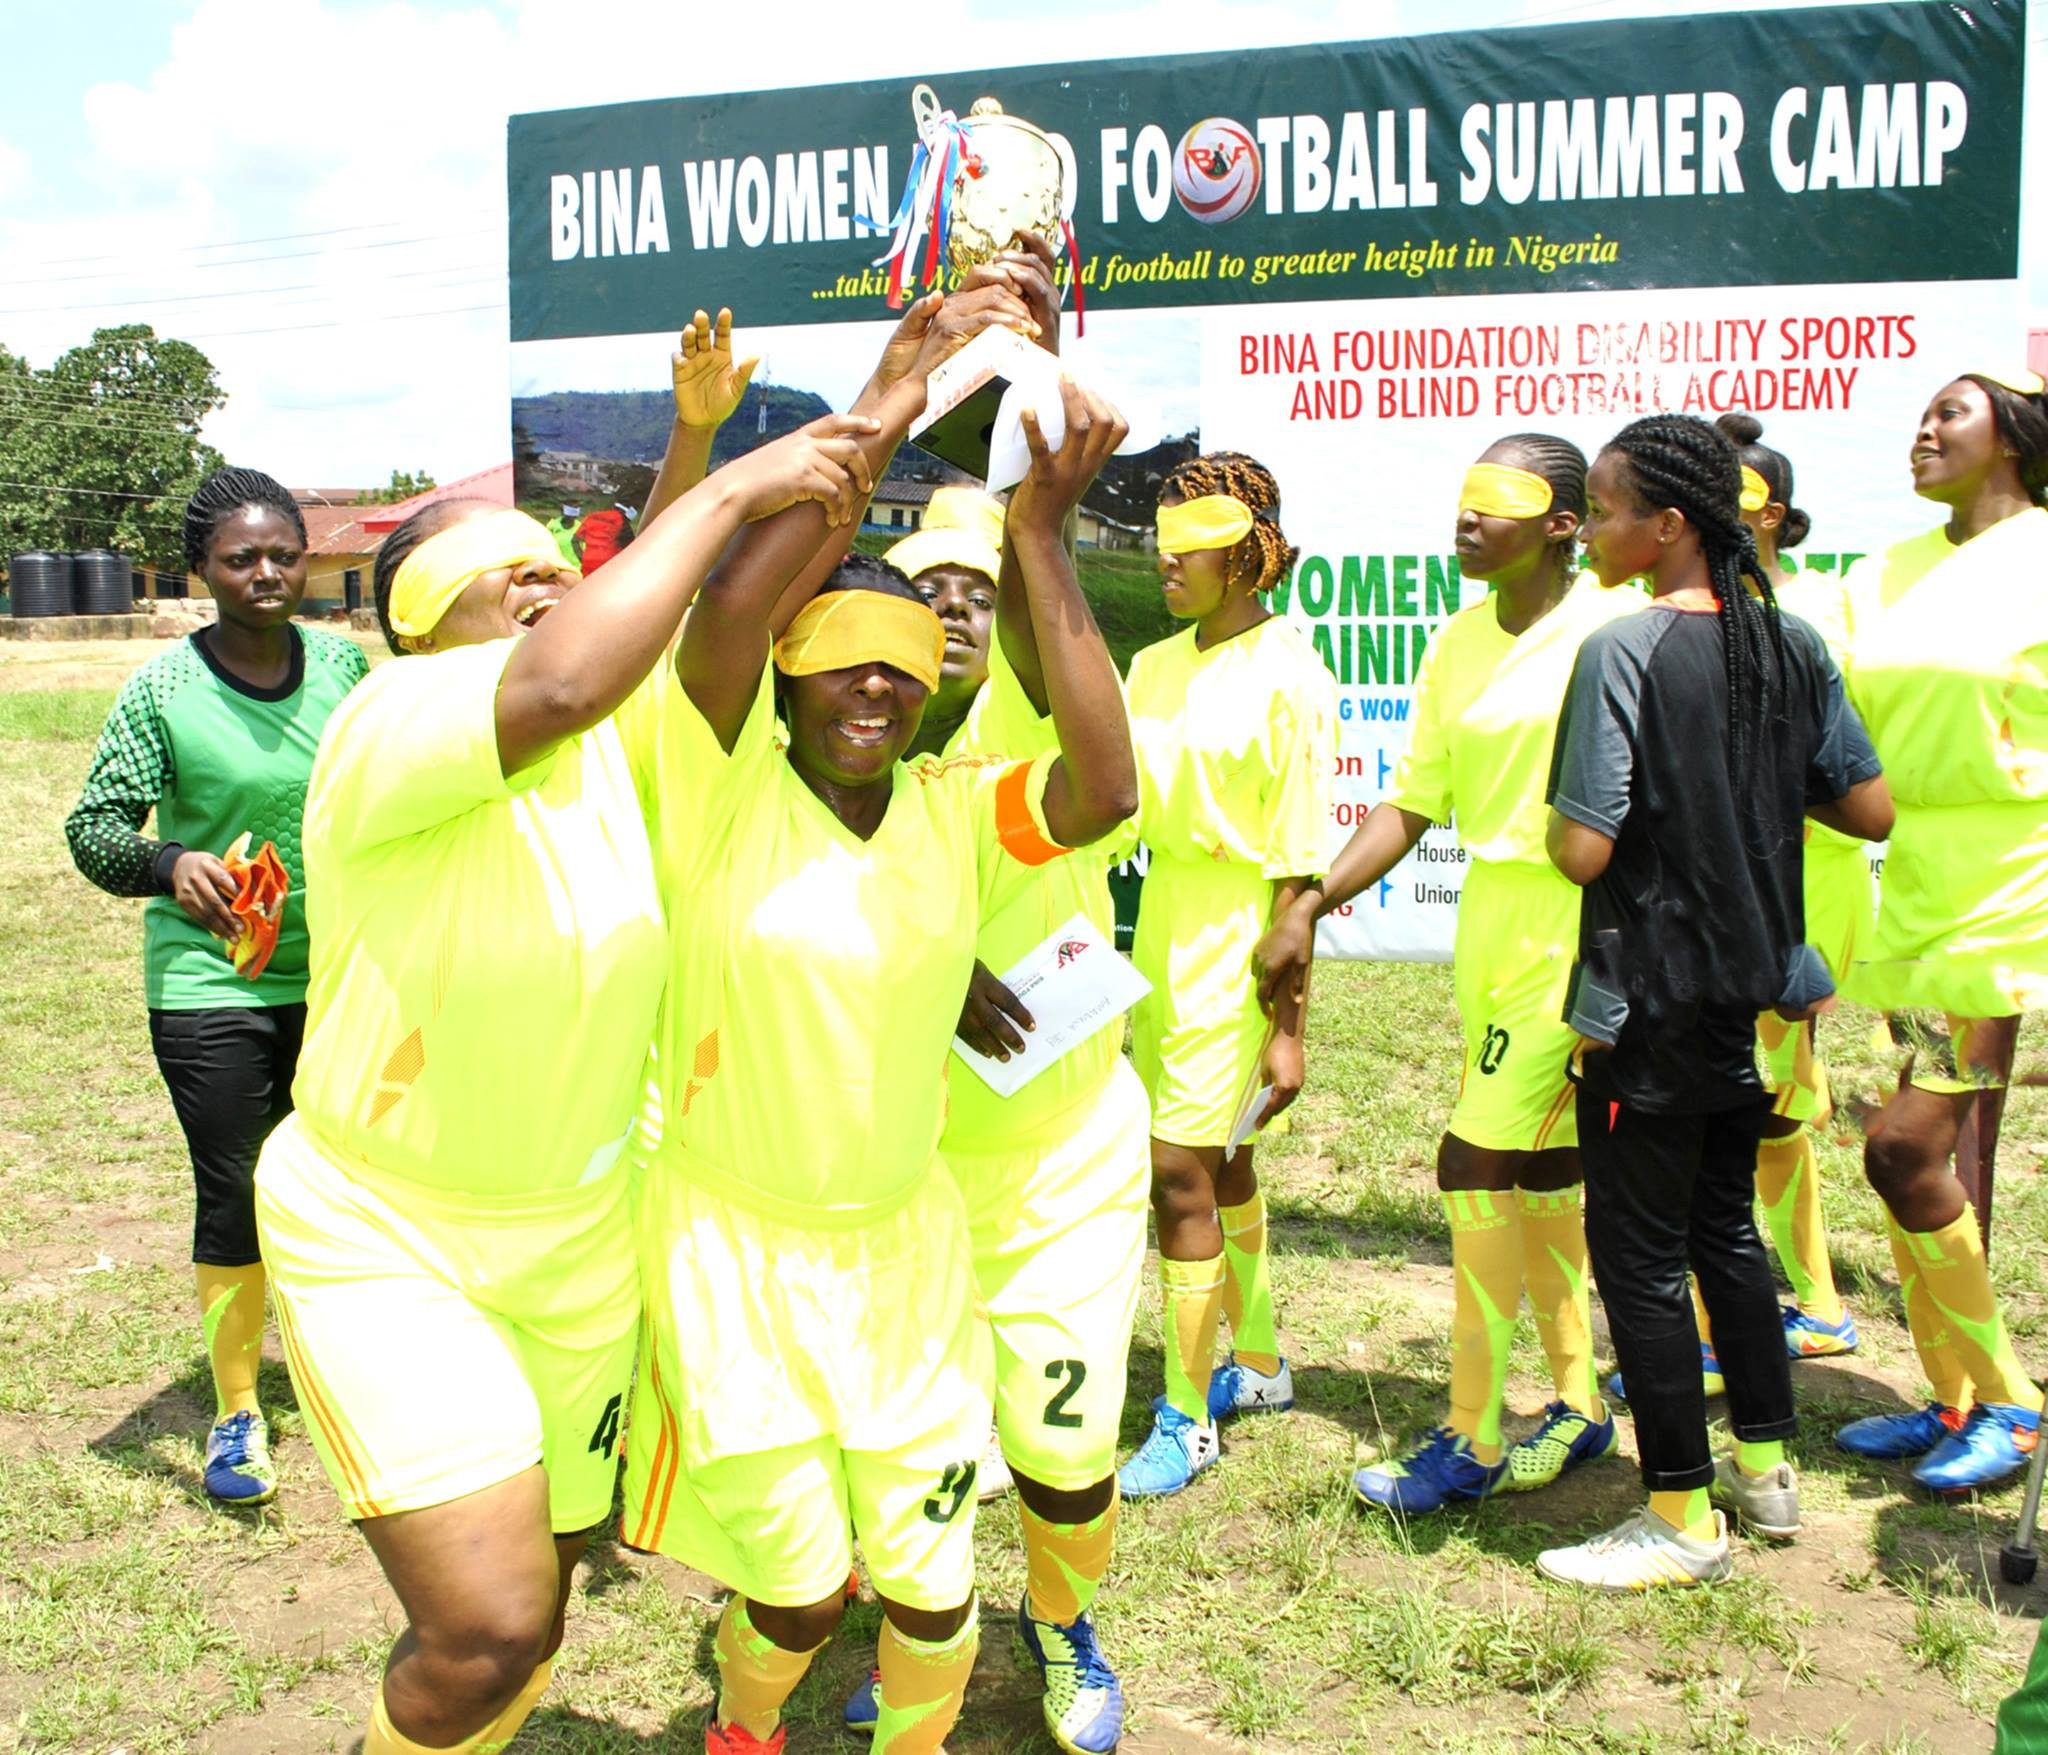 Enugu in Nigeria will host the first edition of the tournament ©IBSA